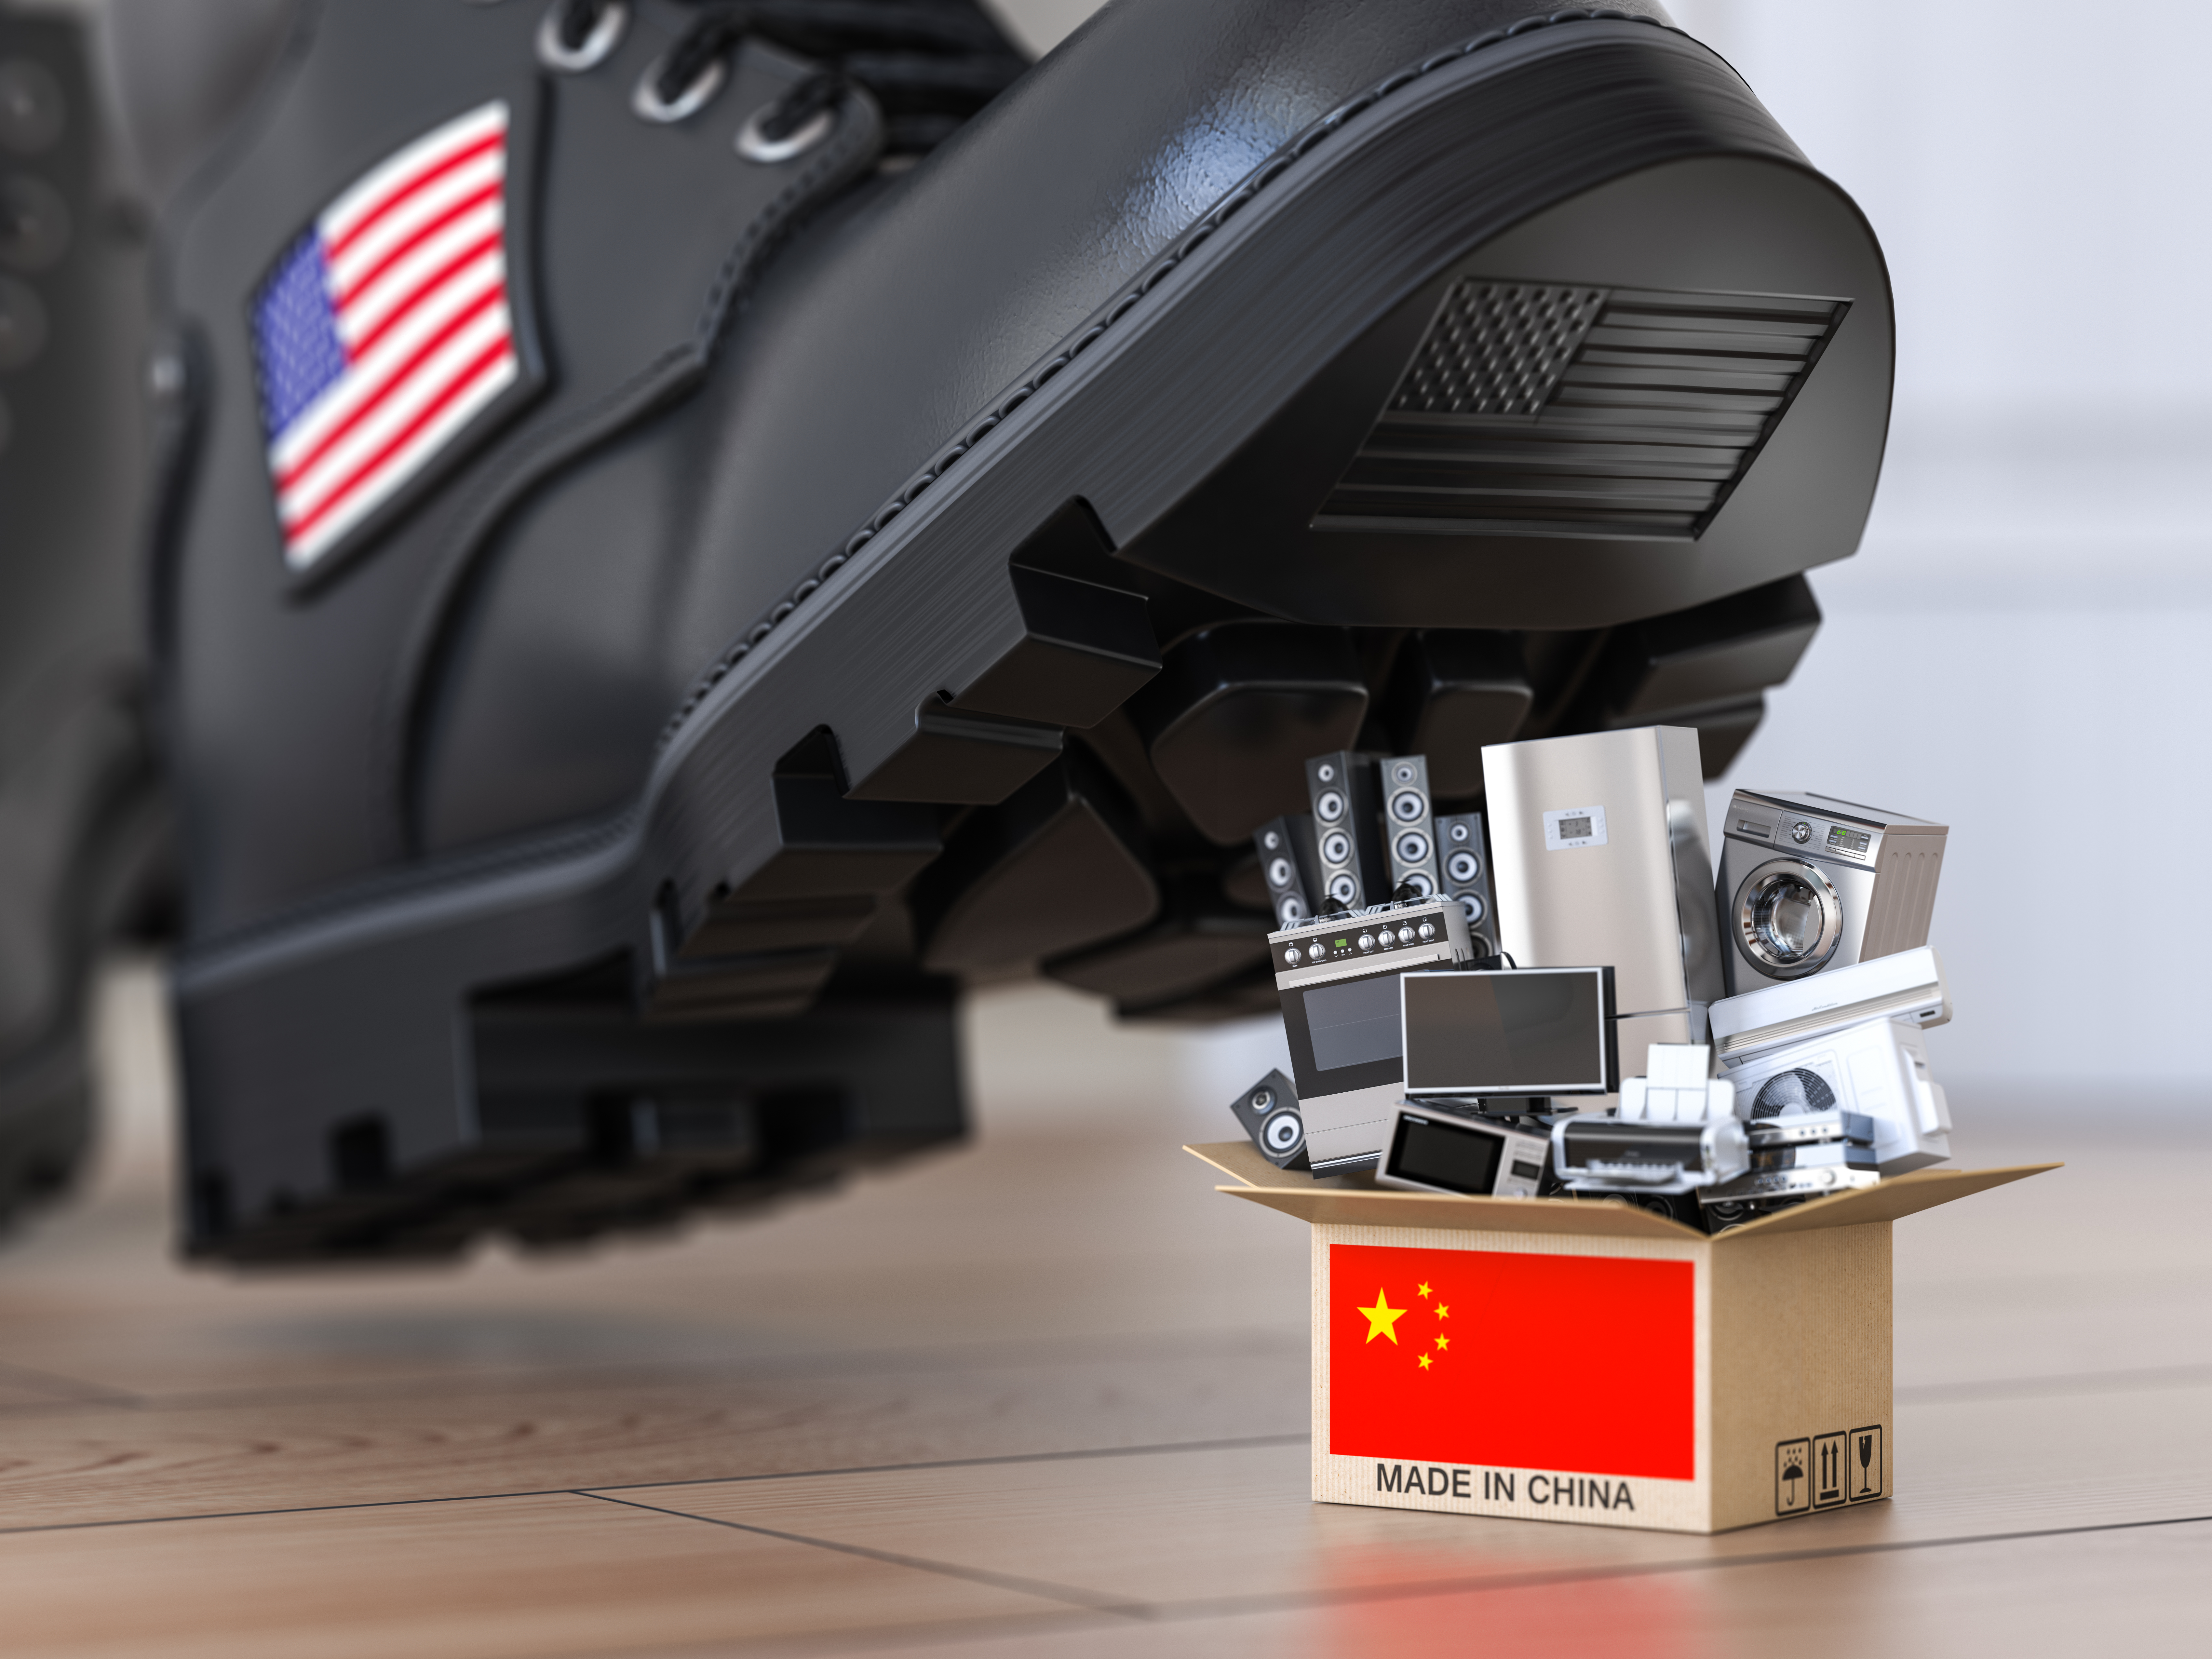 American companies that quit China will face higher costs and lower investment returns, and eventually, decline. (iStock)